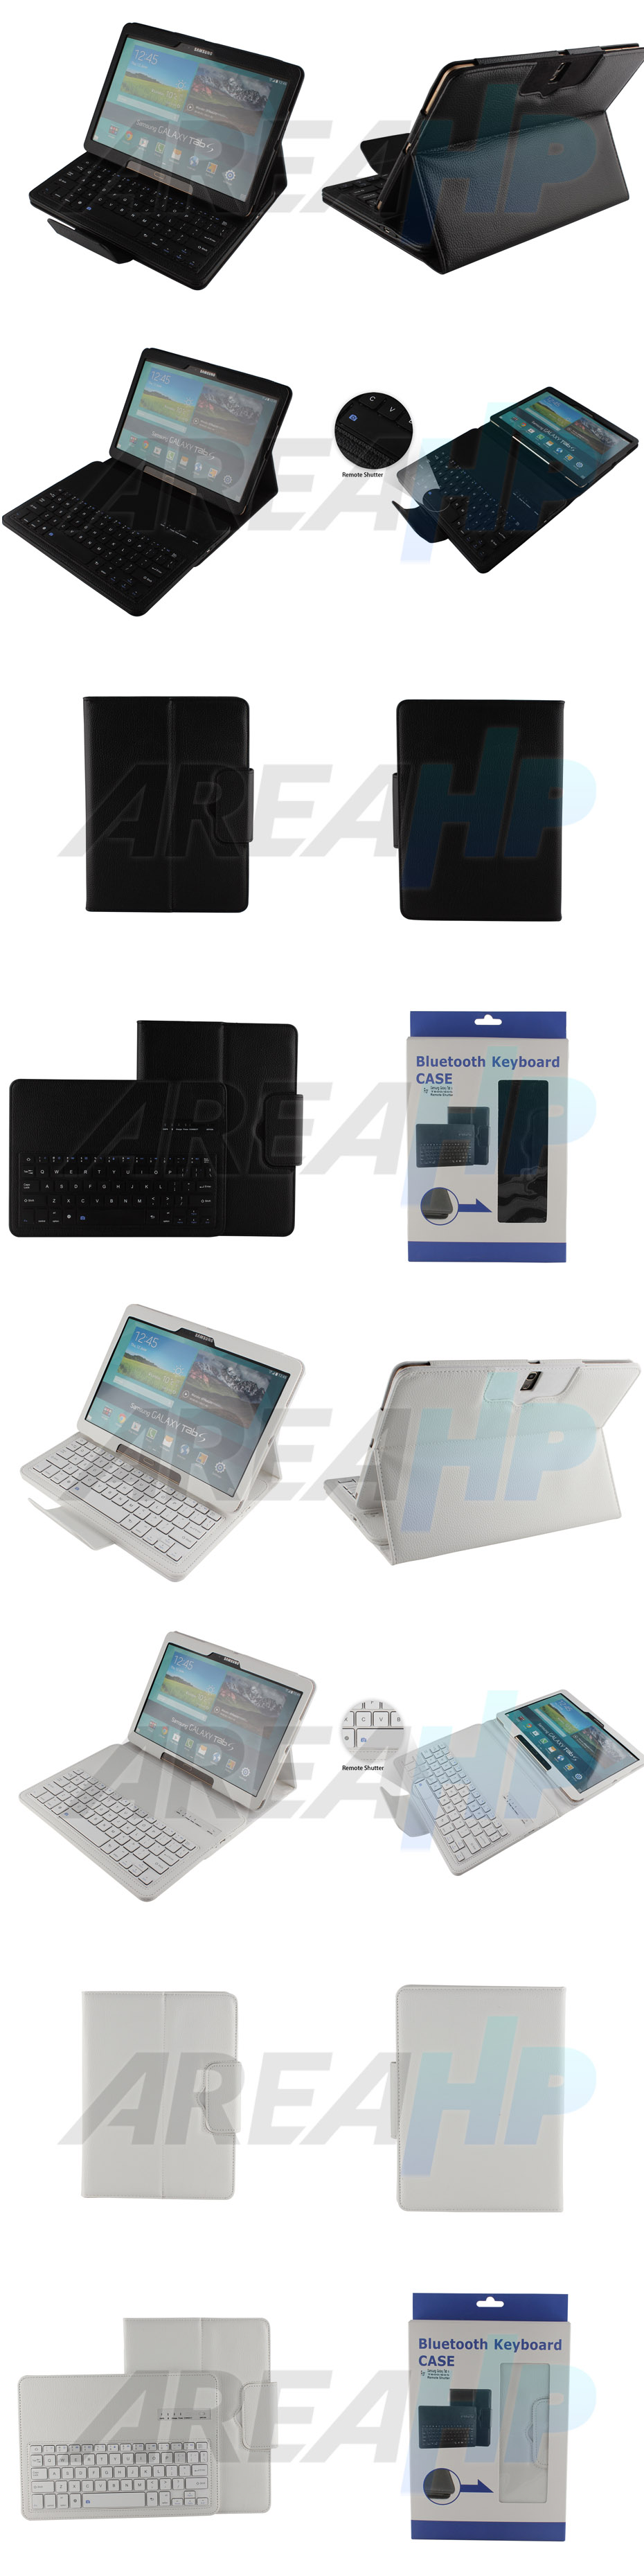 Removable Keyboard Leather Case for Samsung Galaxy Tab S 10.5 Overview